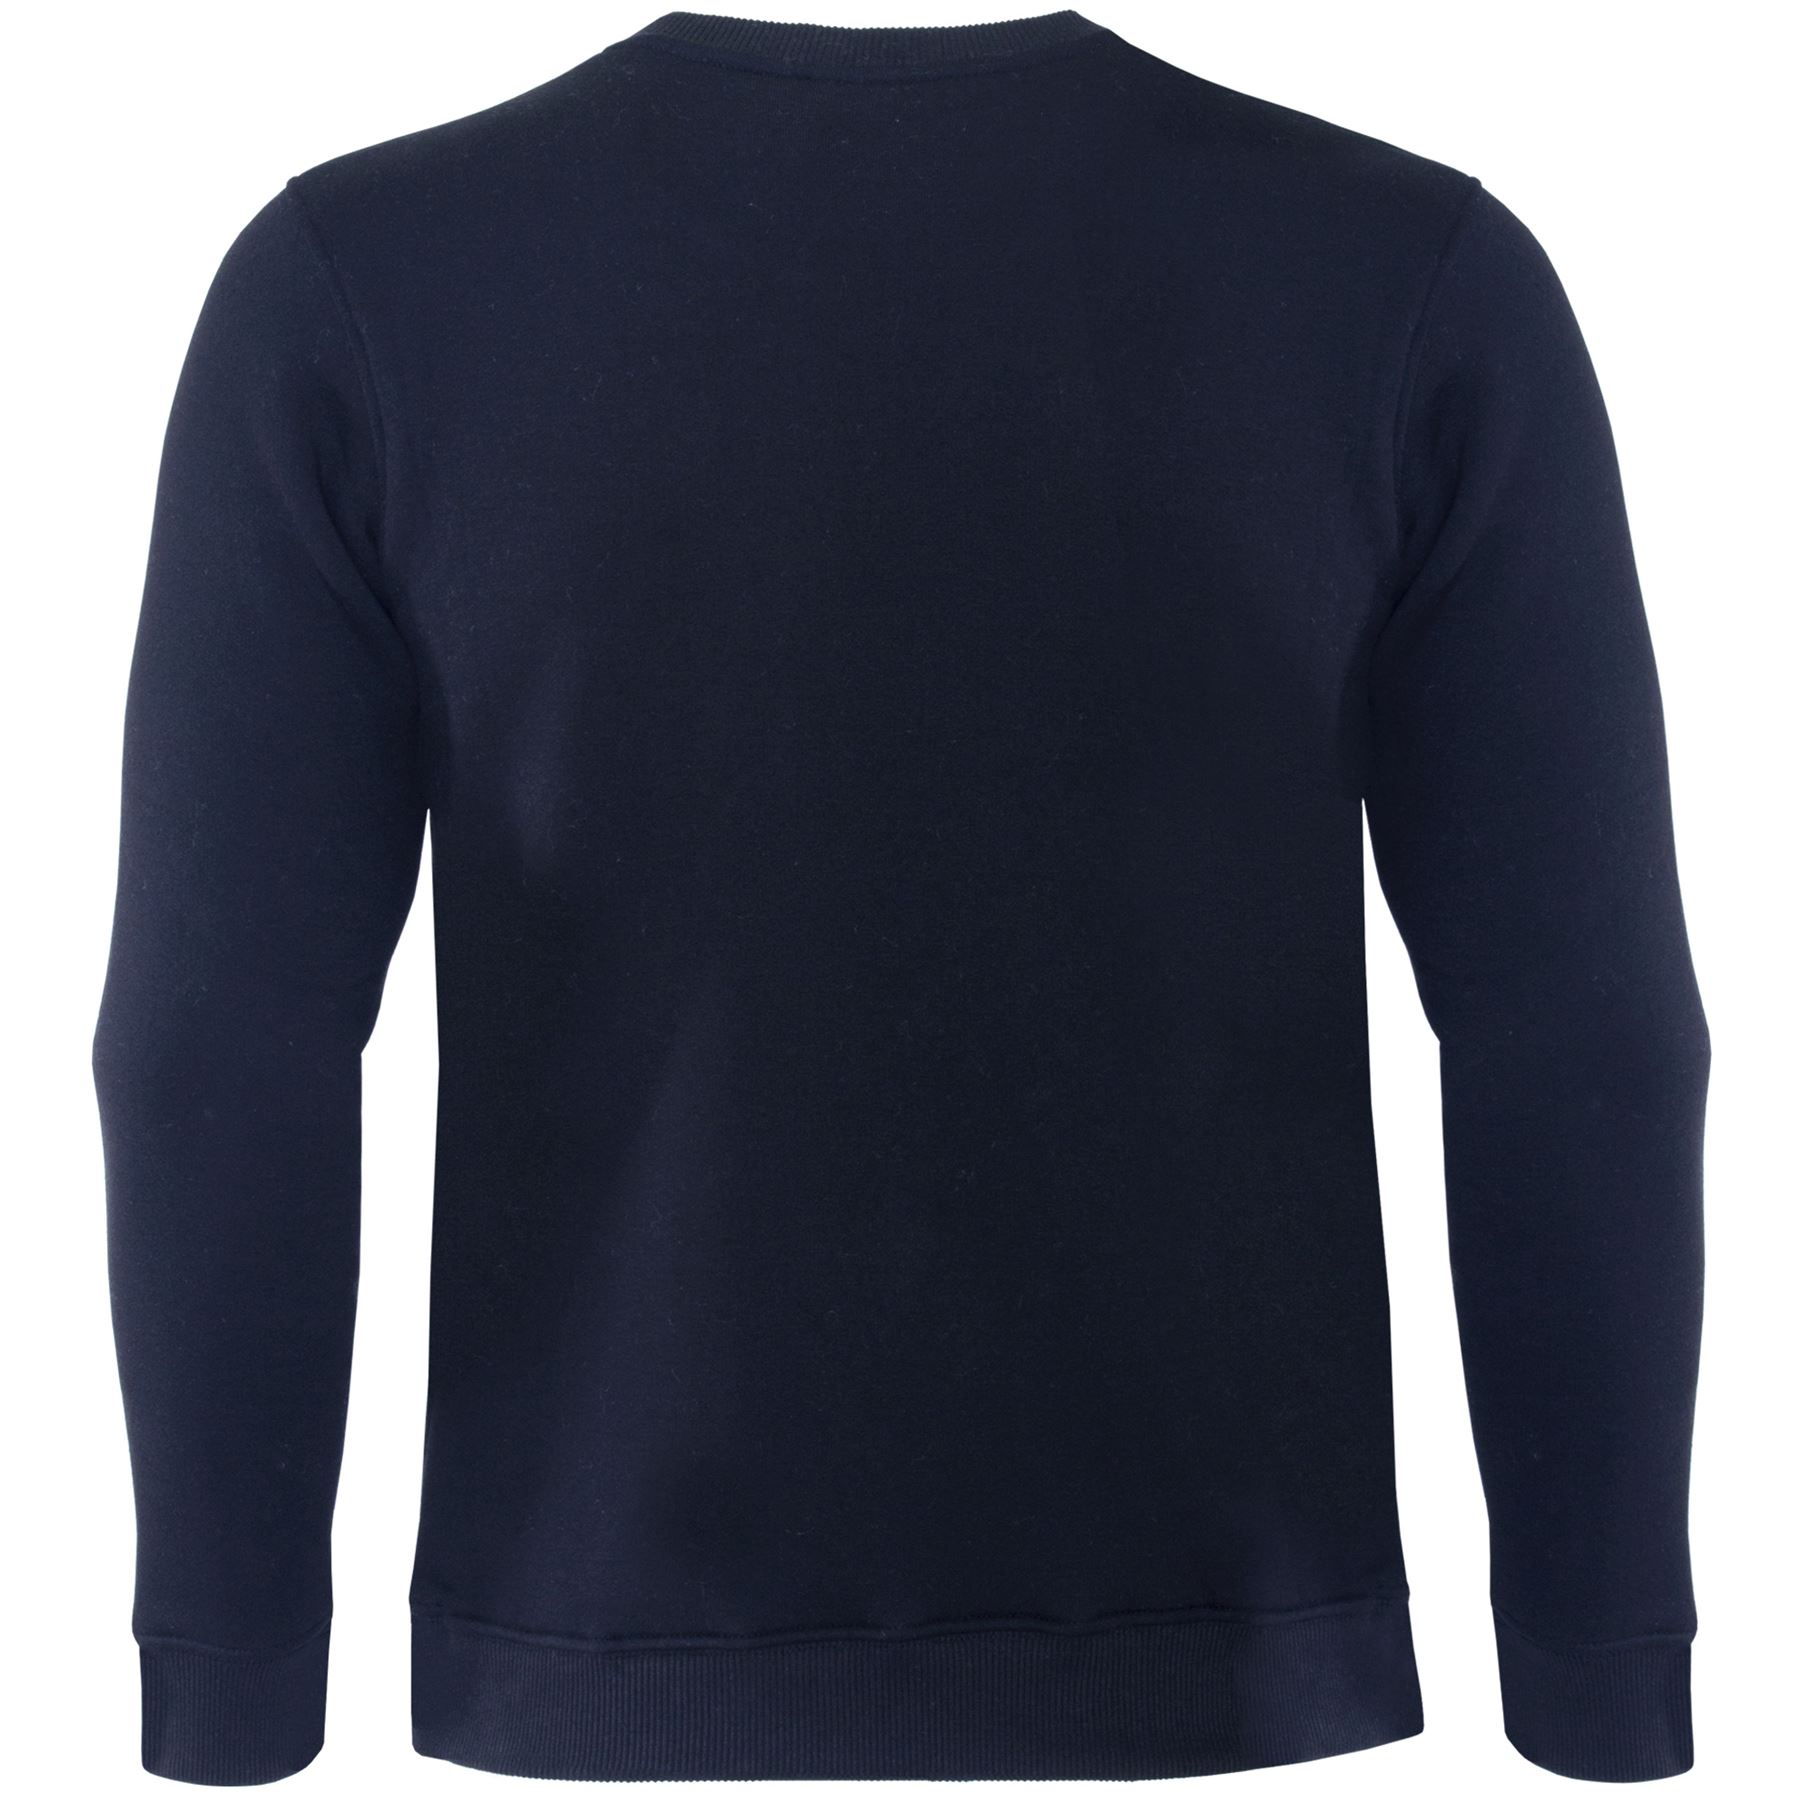 Mens-Crew-Neck-Sweatshirt-Jumper-Casual-Plain-Jersey-Fleece-Sweat-Top-Pullover thumbnail 7